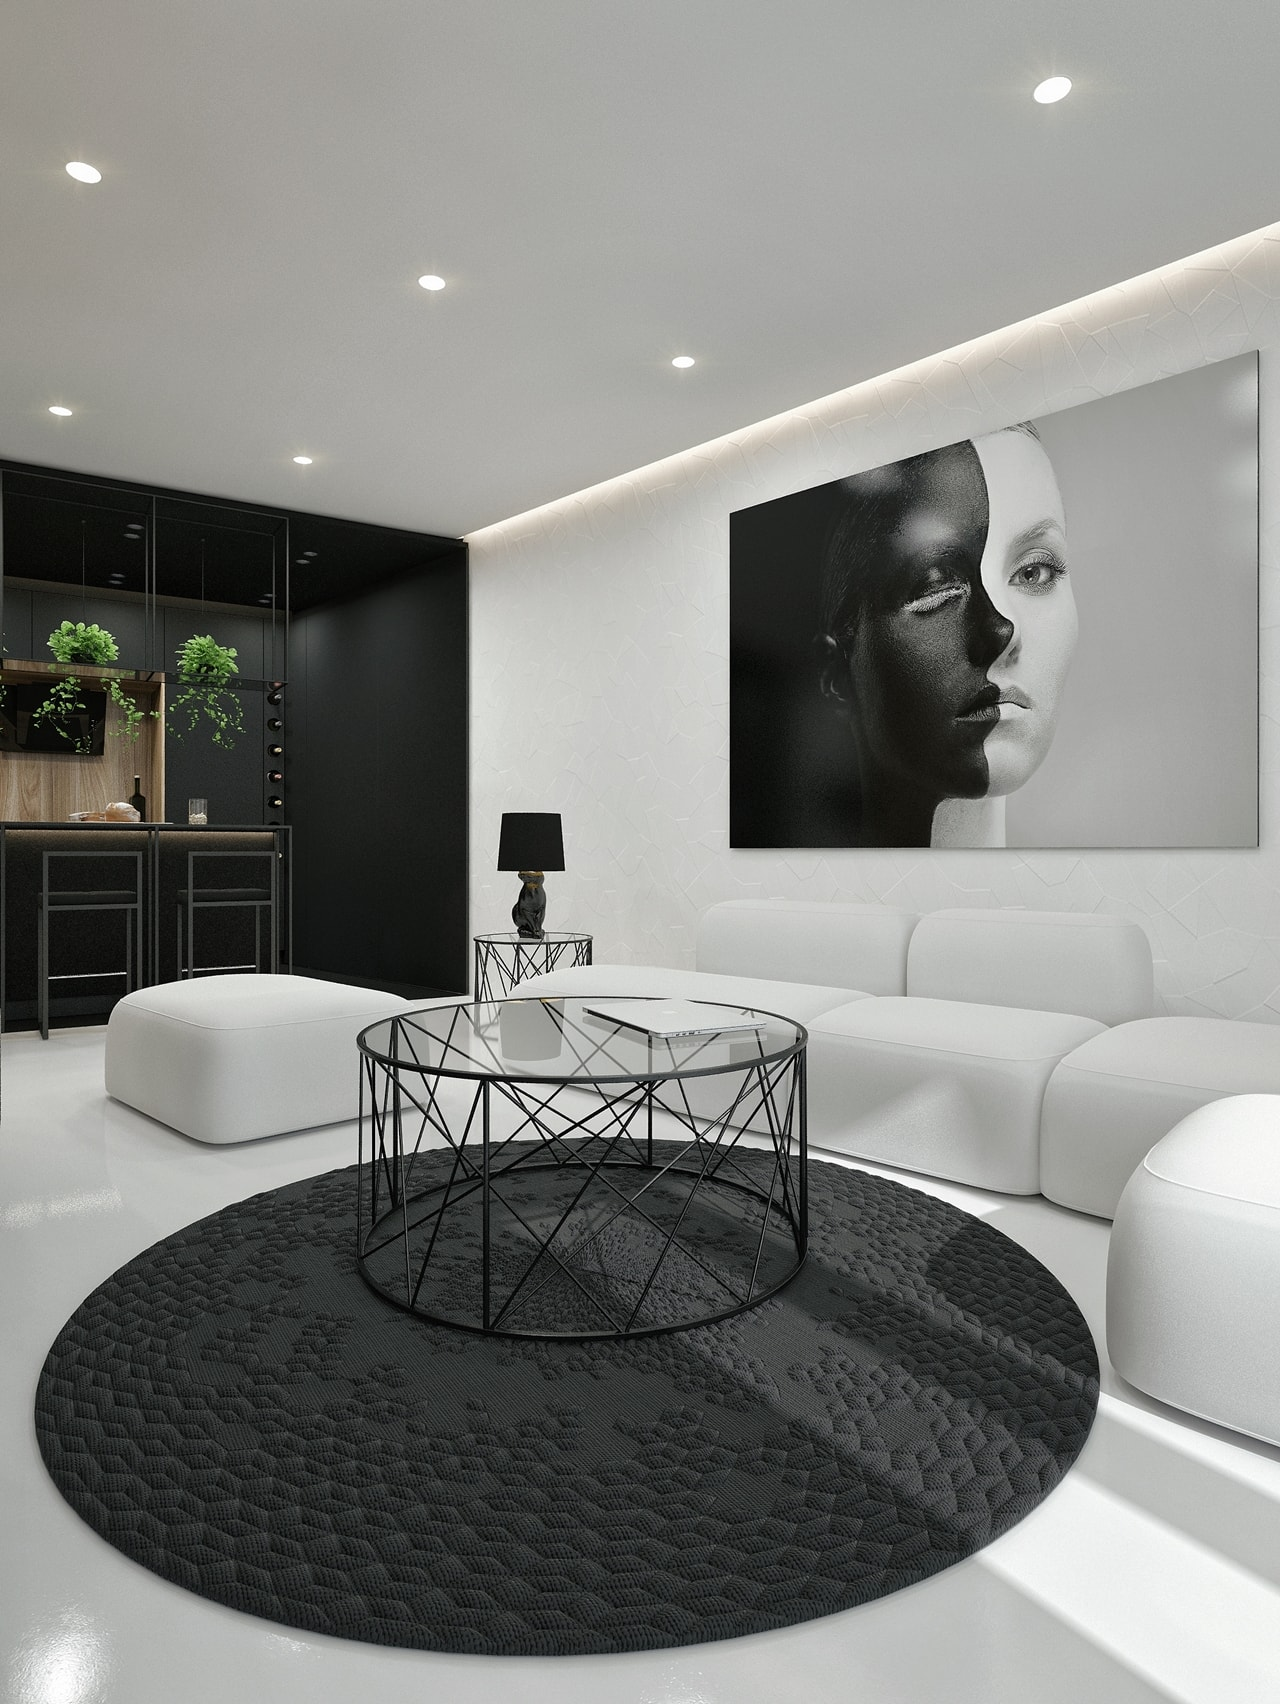 Black and white interior design ideas modern apartment by White interior design